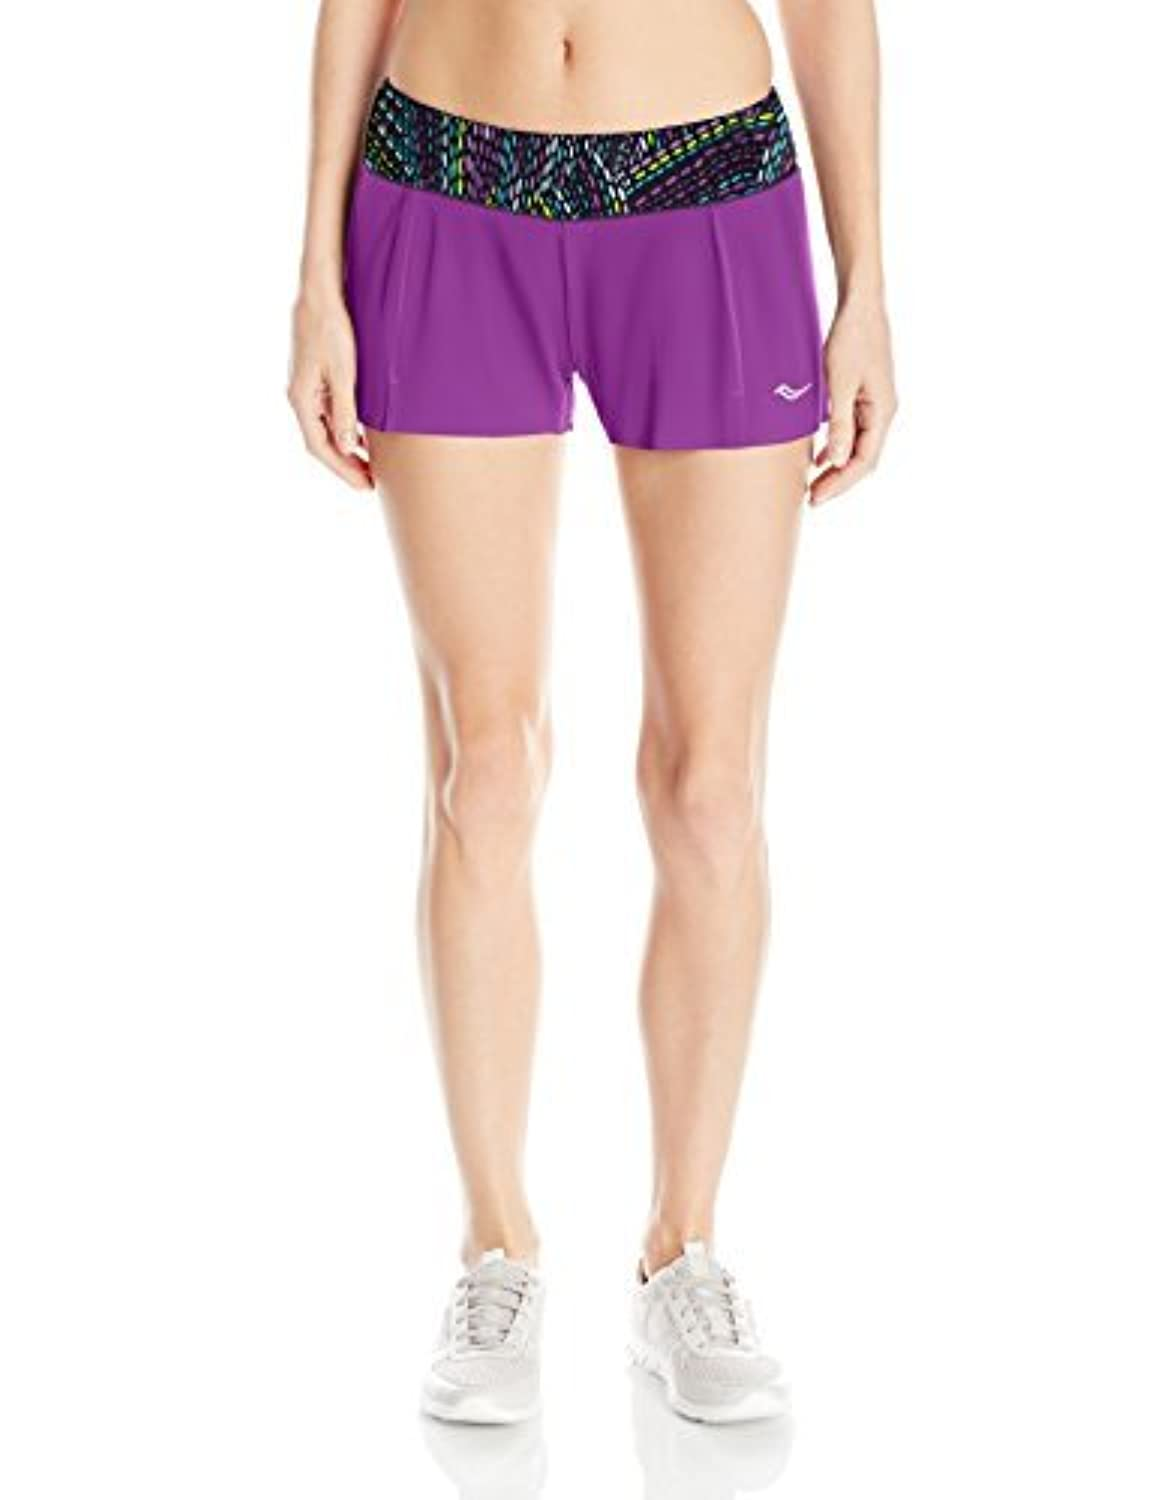 Saucony Women's Pinnacle Shorts Dahlia/Multicolor X-Small [並行輸入品]